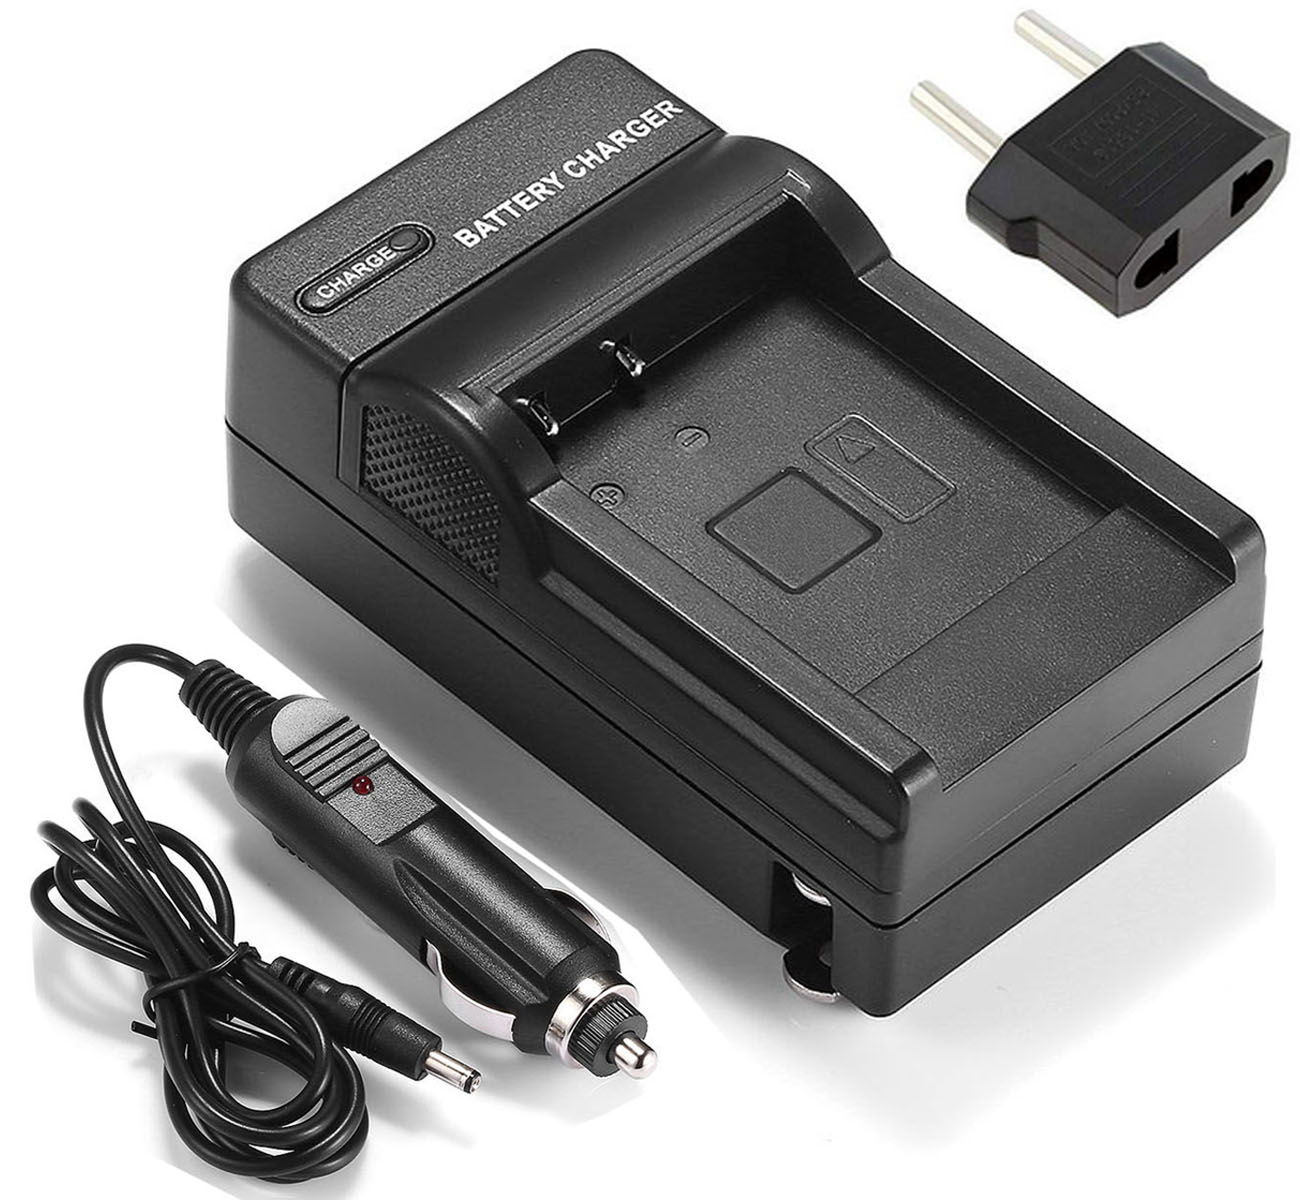 VP-D303D Battery Pack VP-D303Di Digital Video Camcorder Charger for Samsung VP-D303 VP-D303i